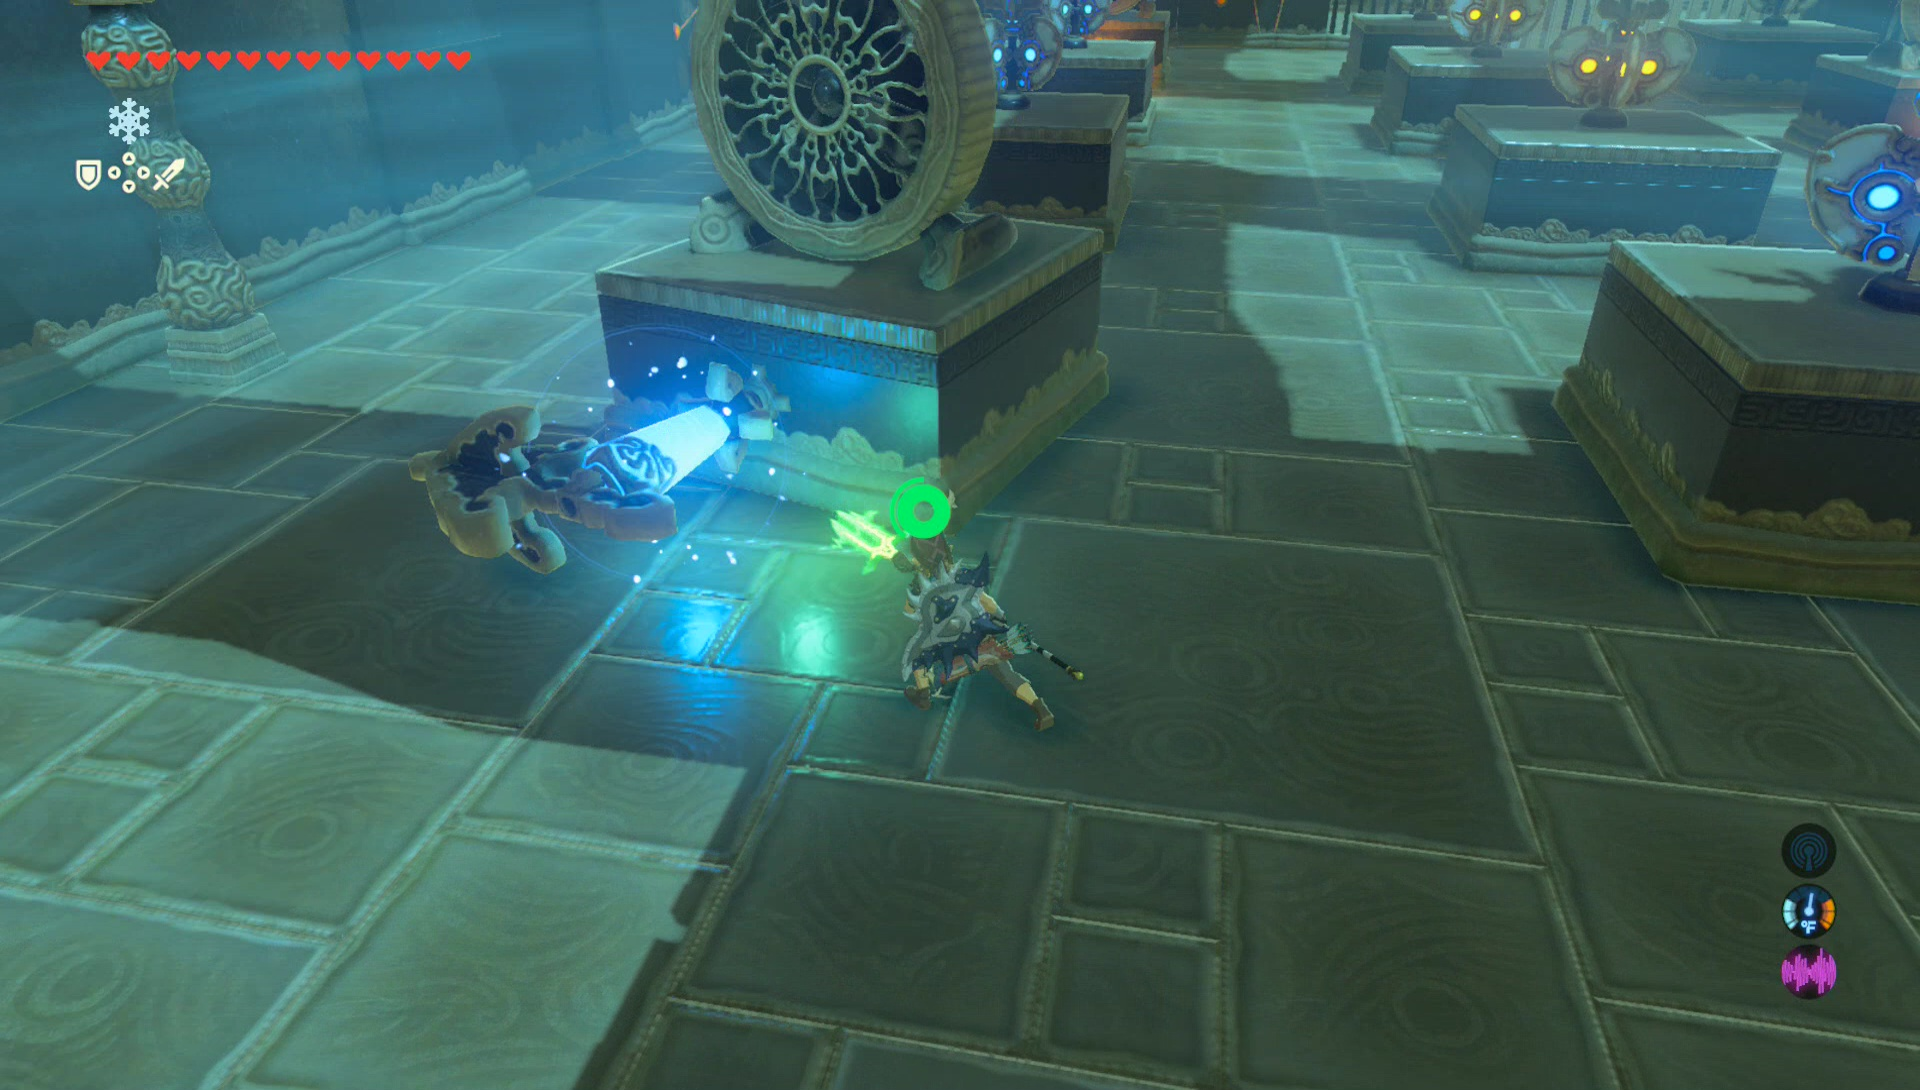 Akh Va Quot Shrine Guide Zelda Dungeon Submitted 3 years ago by agon727. akh va quot shrine guide zelda dungeon